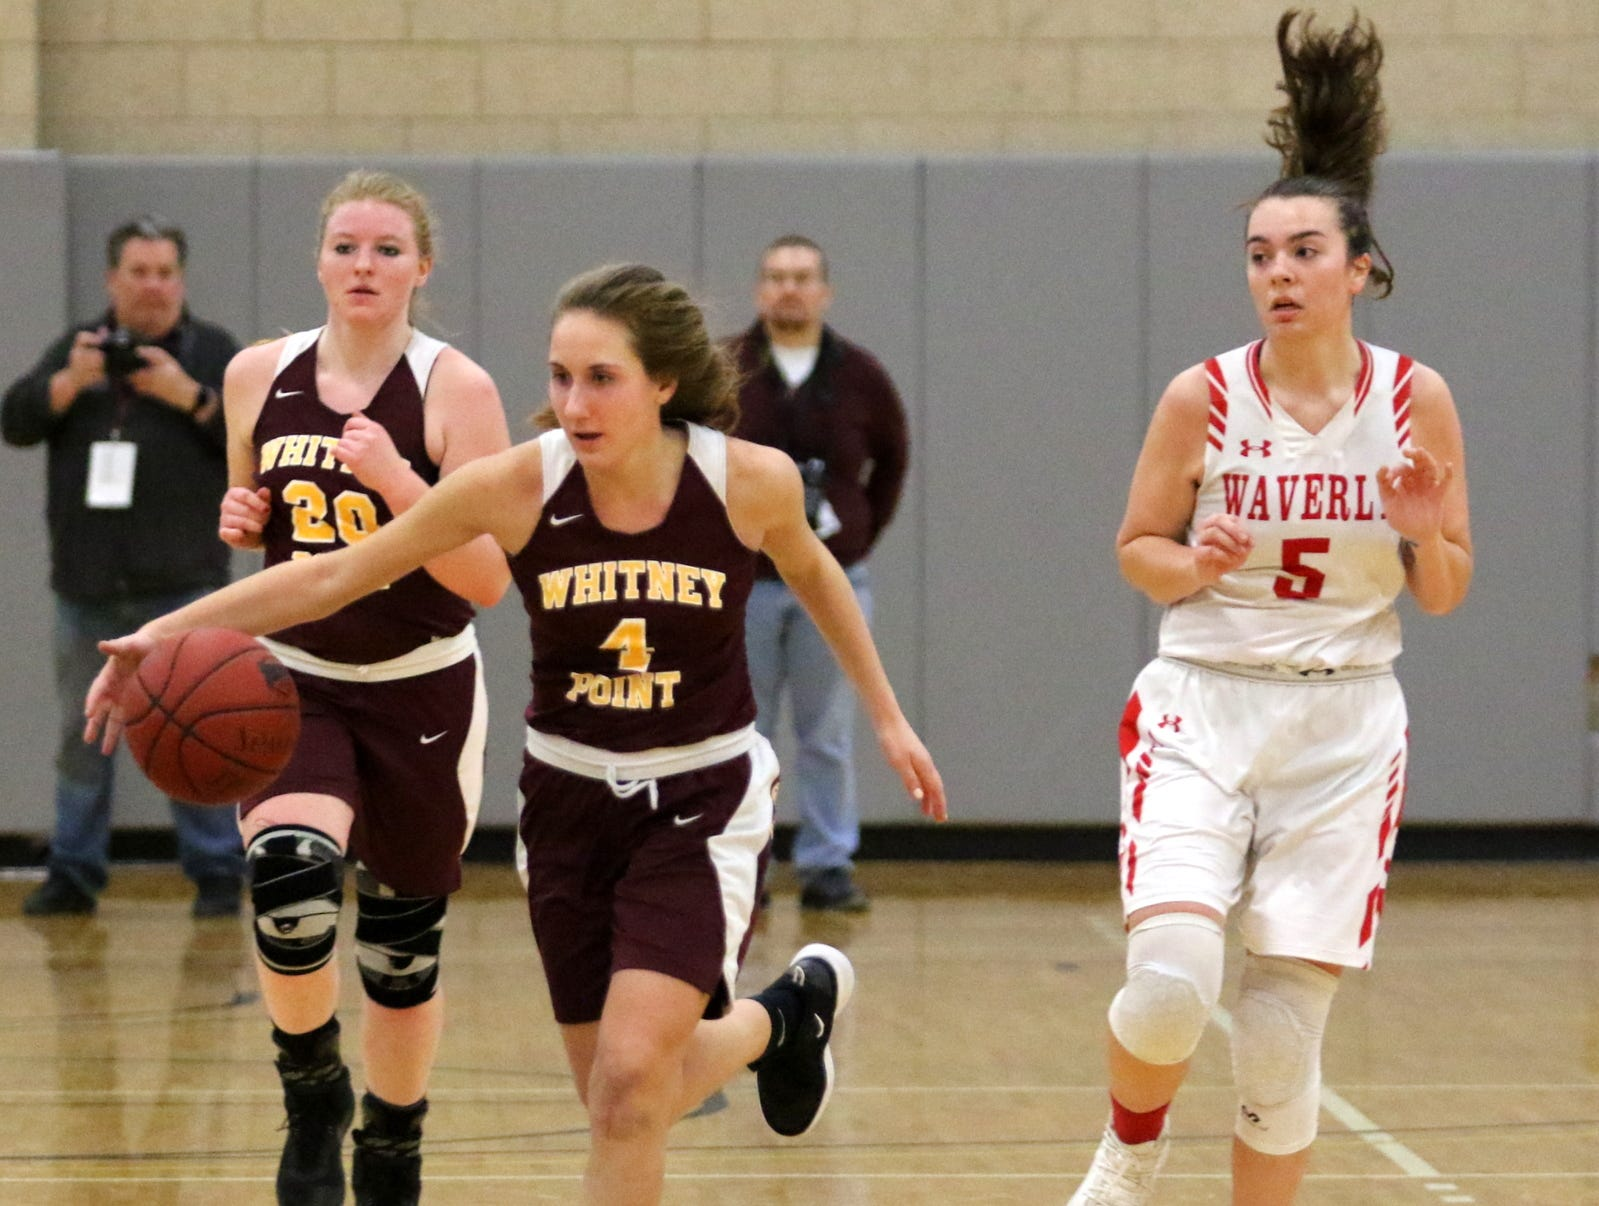 Action from the IAC Large School girls basketball championship game between Waverly and Whitney Point on Feb. 14, 2019 at Tompkins Cortland Community College.